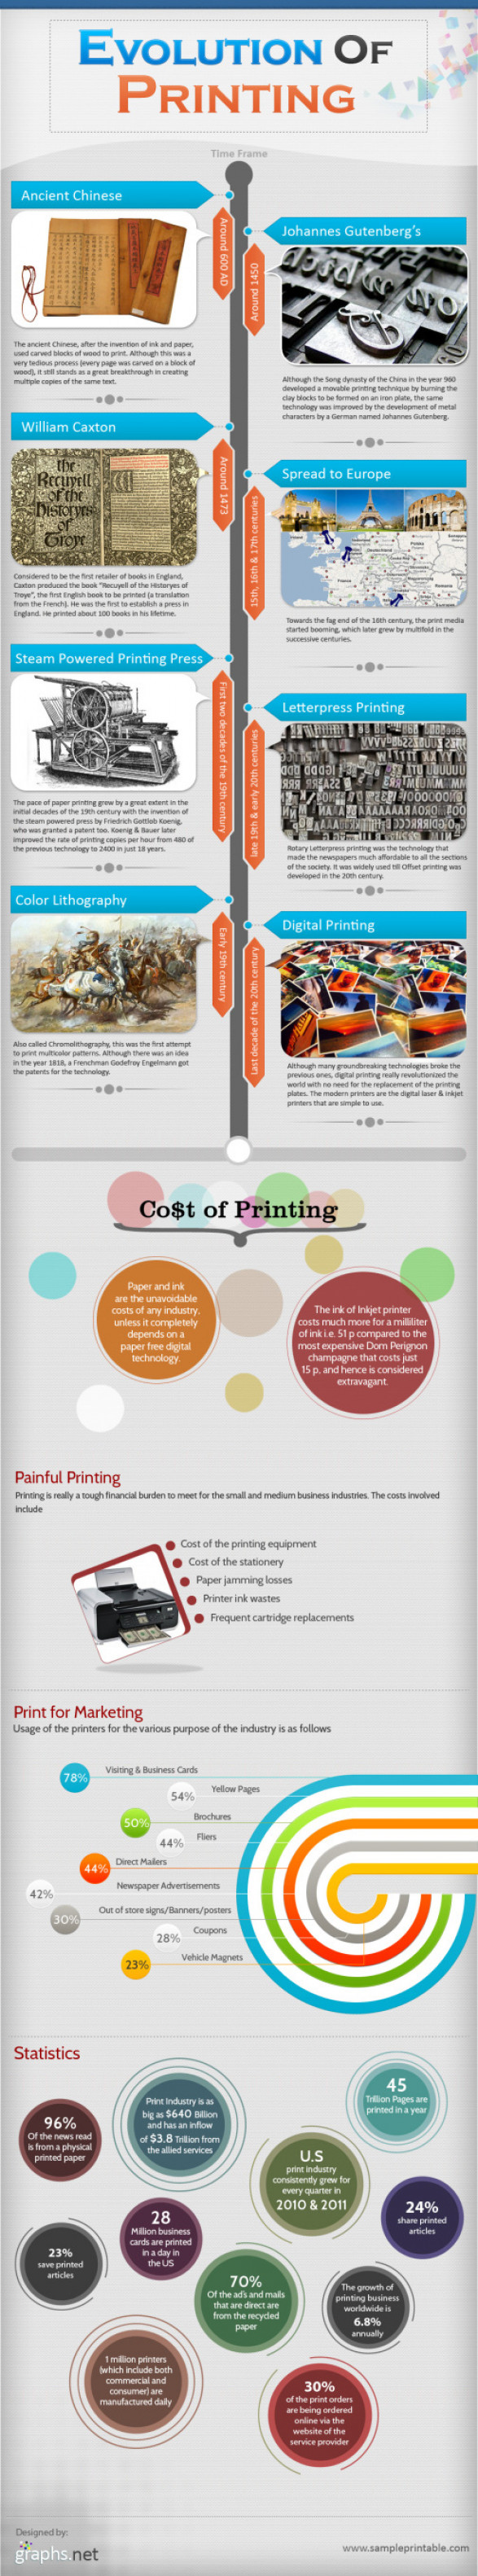 Evolution of Printing (Infographic)